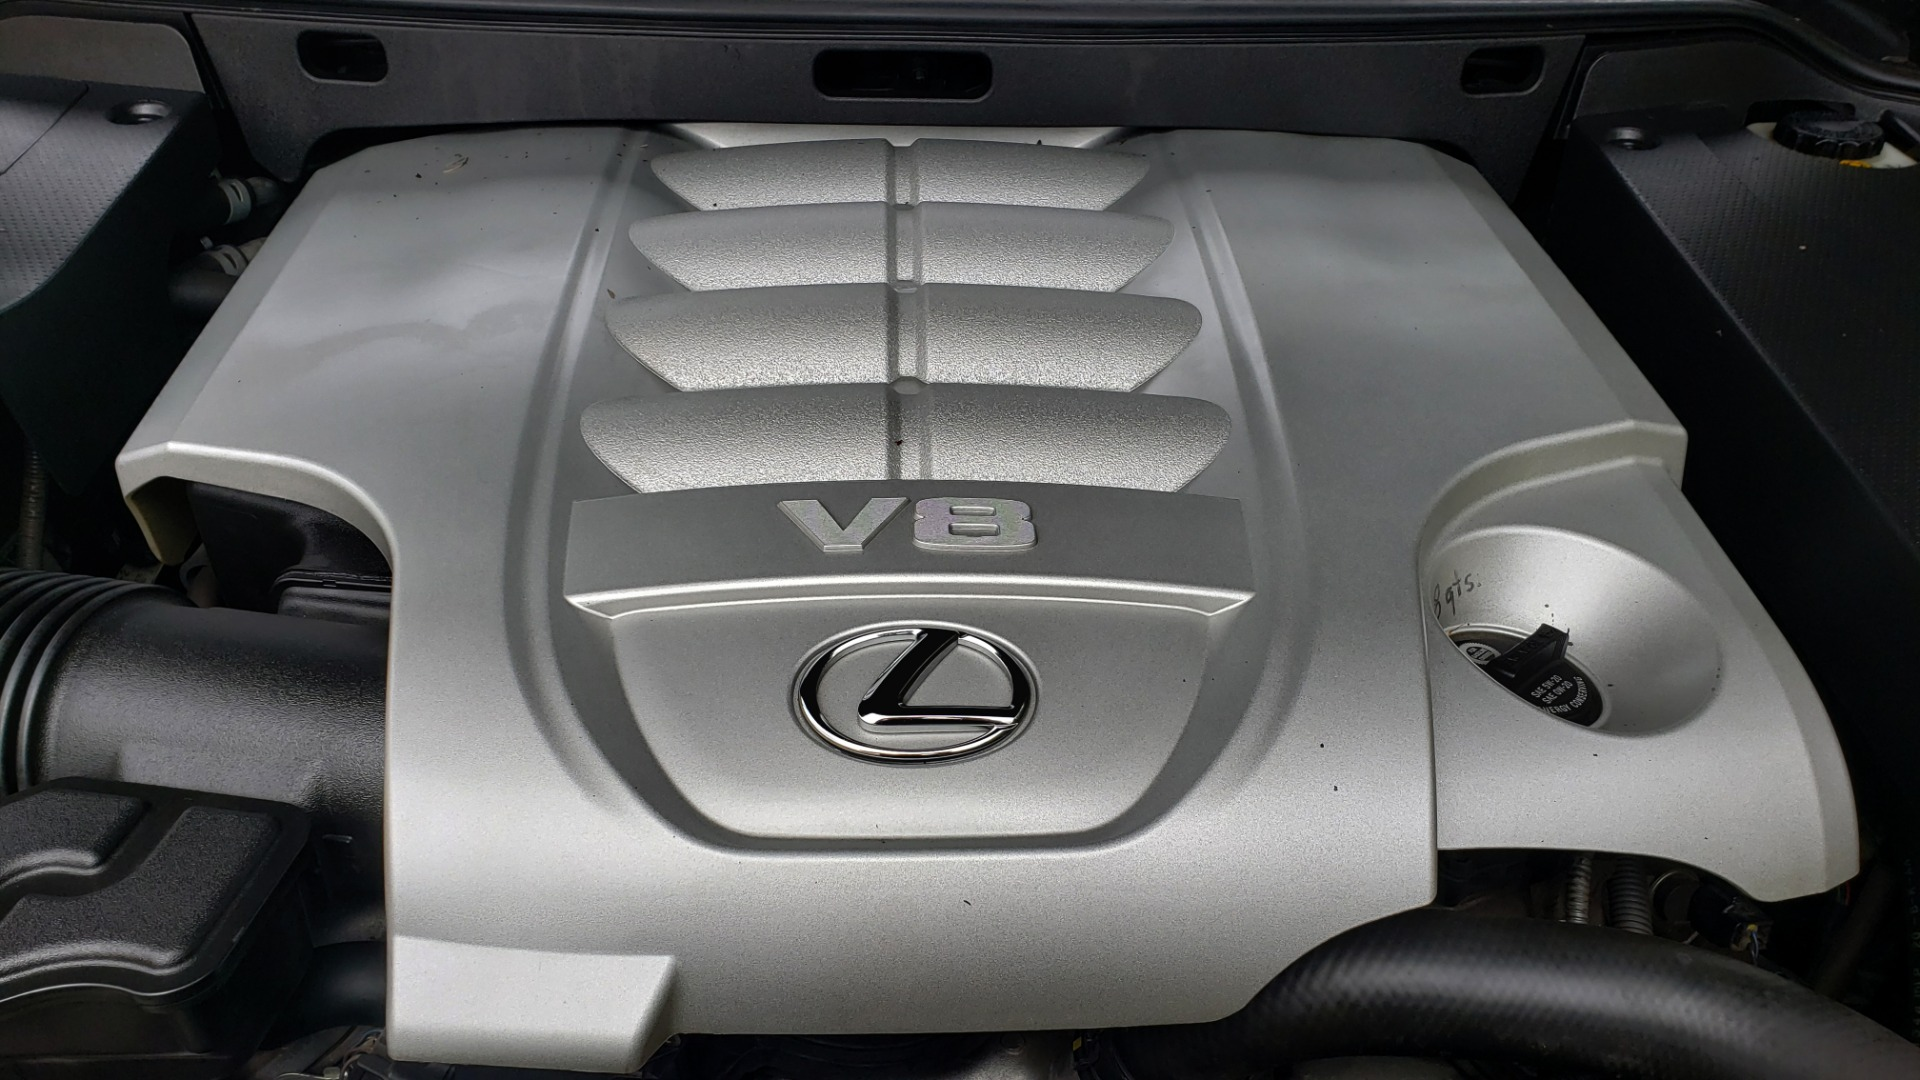 Used 2008 Lexus LX 570 4WD / TECH PKG / NAV / SUNROOF / MARK LEVINSON / PARK ASST for sale $22,995 at Formula Imports in Charlotte NC 28227 11